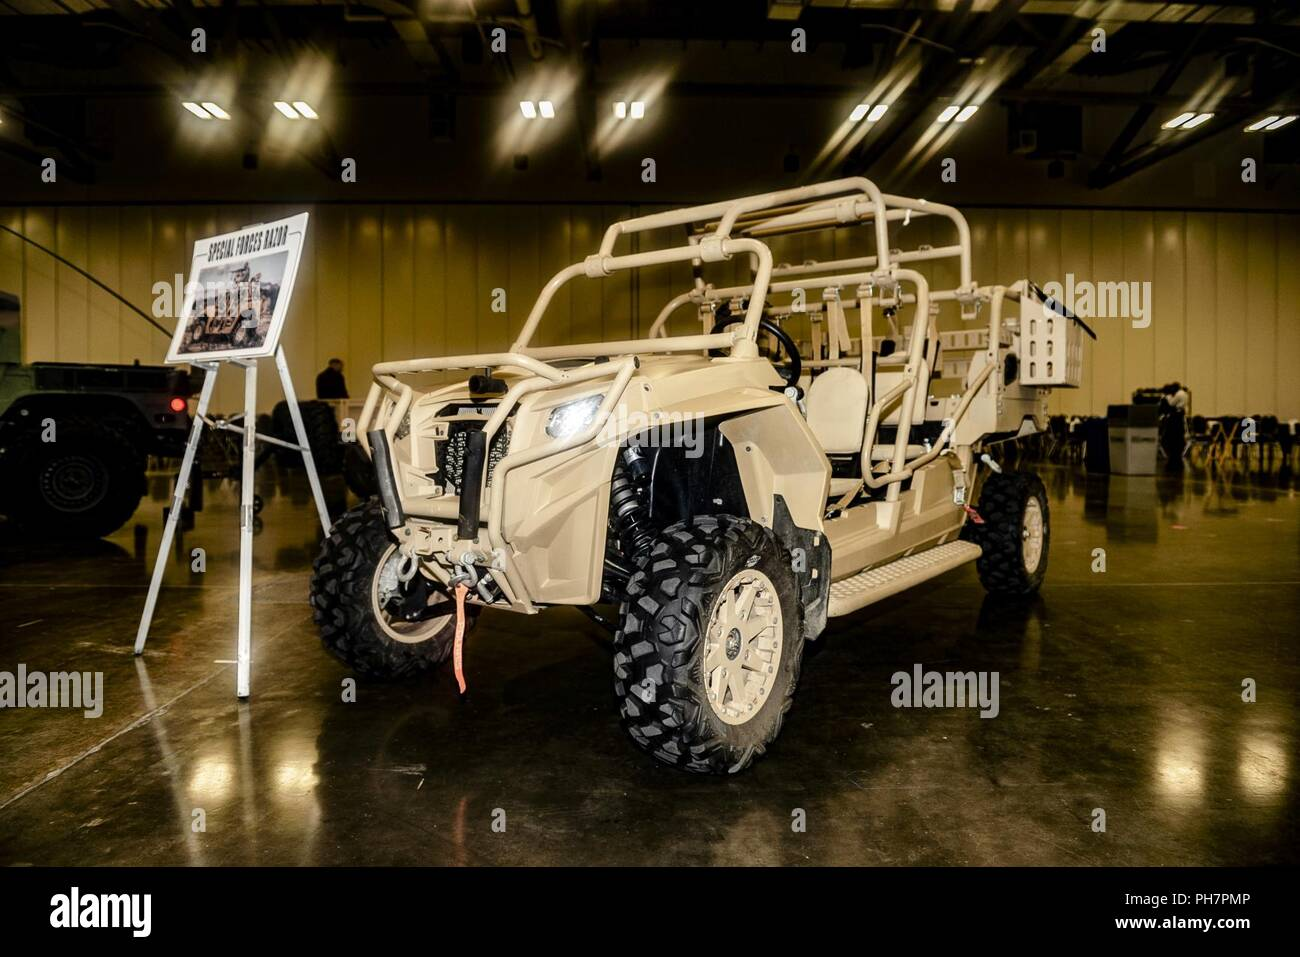 Several pieces of military equipment were on display inside the